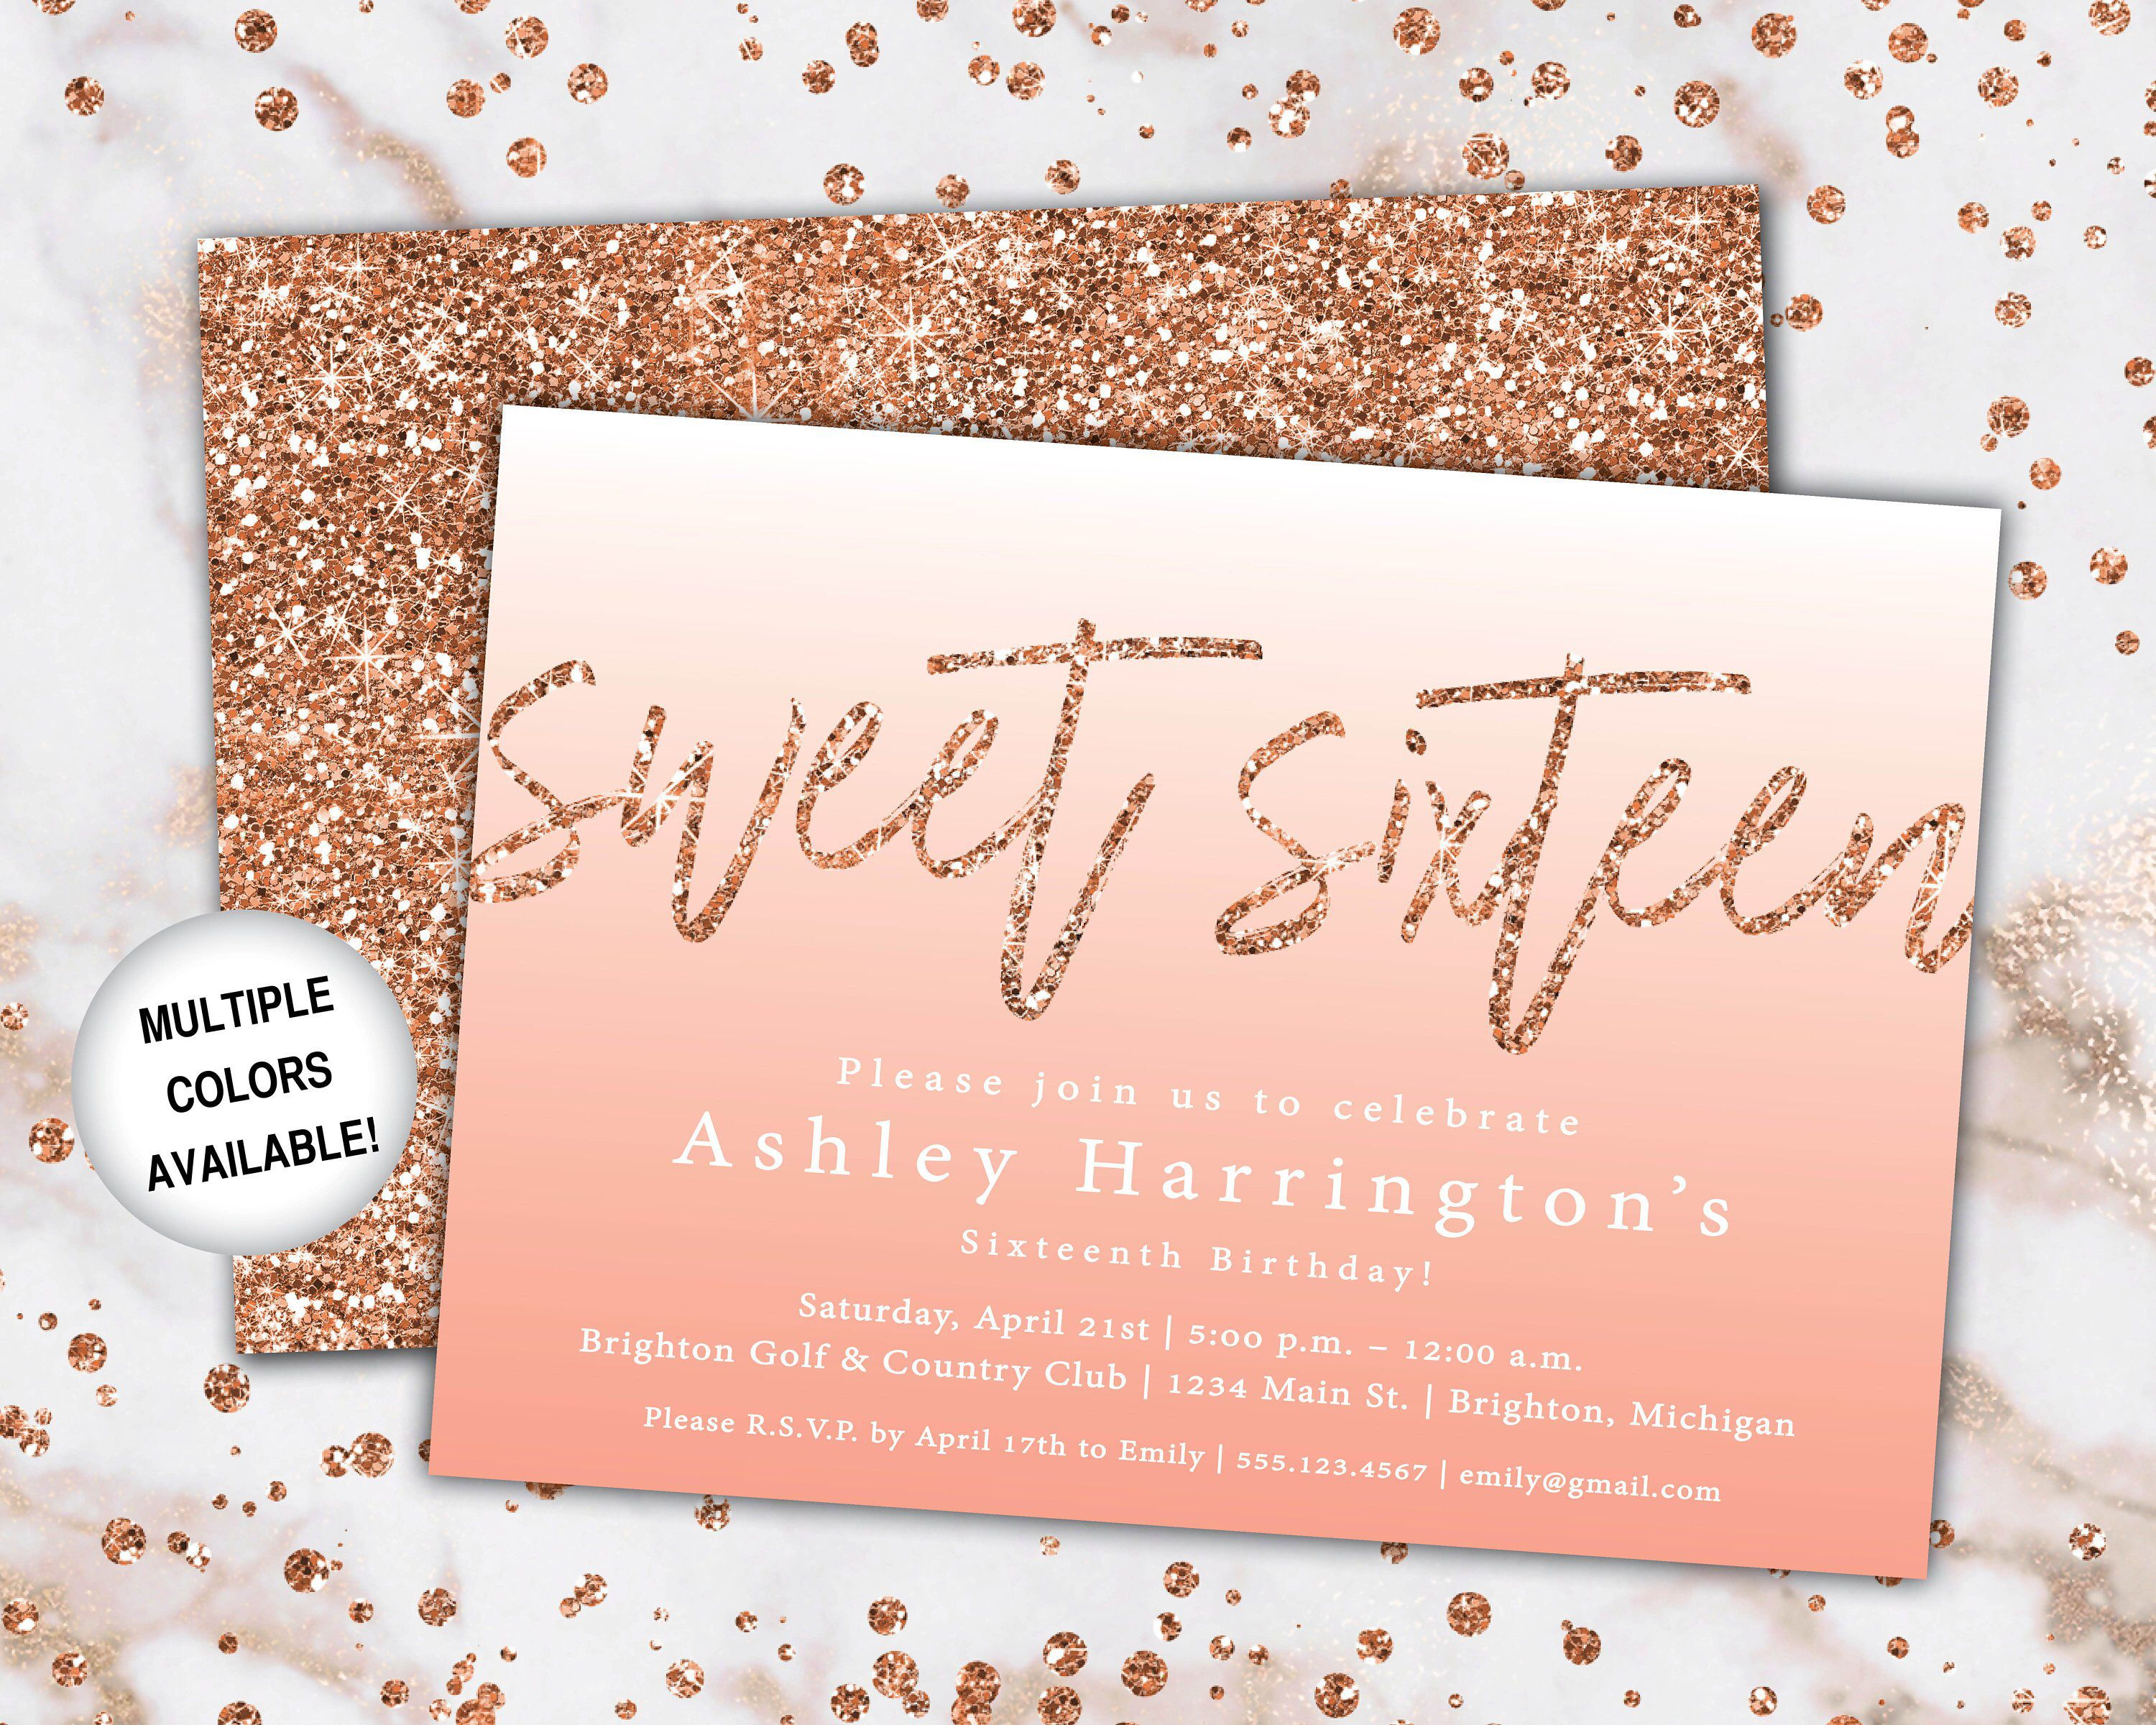 Rose Gold Sweet 16 Invitation Sweet Sixteen Birthday Invitation Template Rose Rose Gold Invitations Gold Bridal Shower Invitations Bridal Brunch Invitations